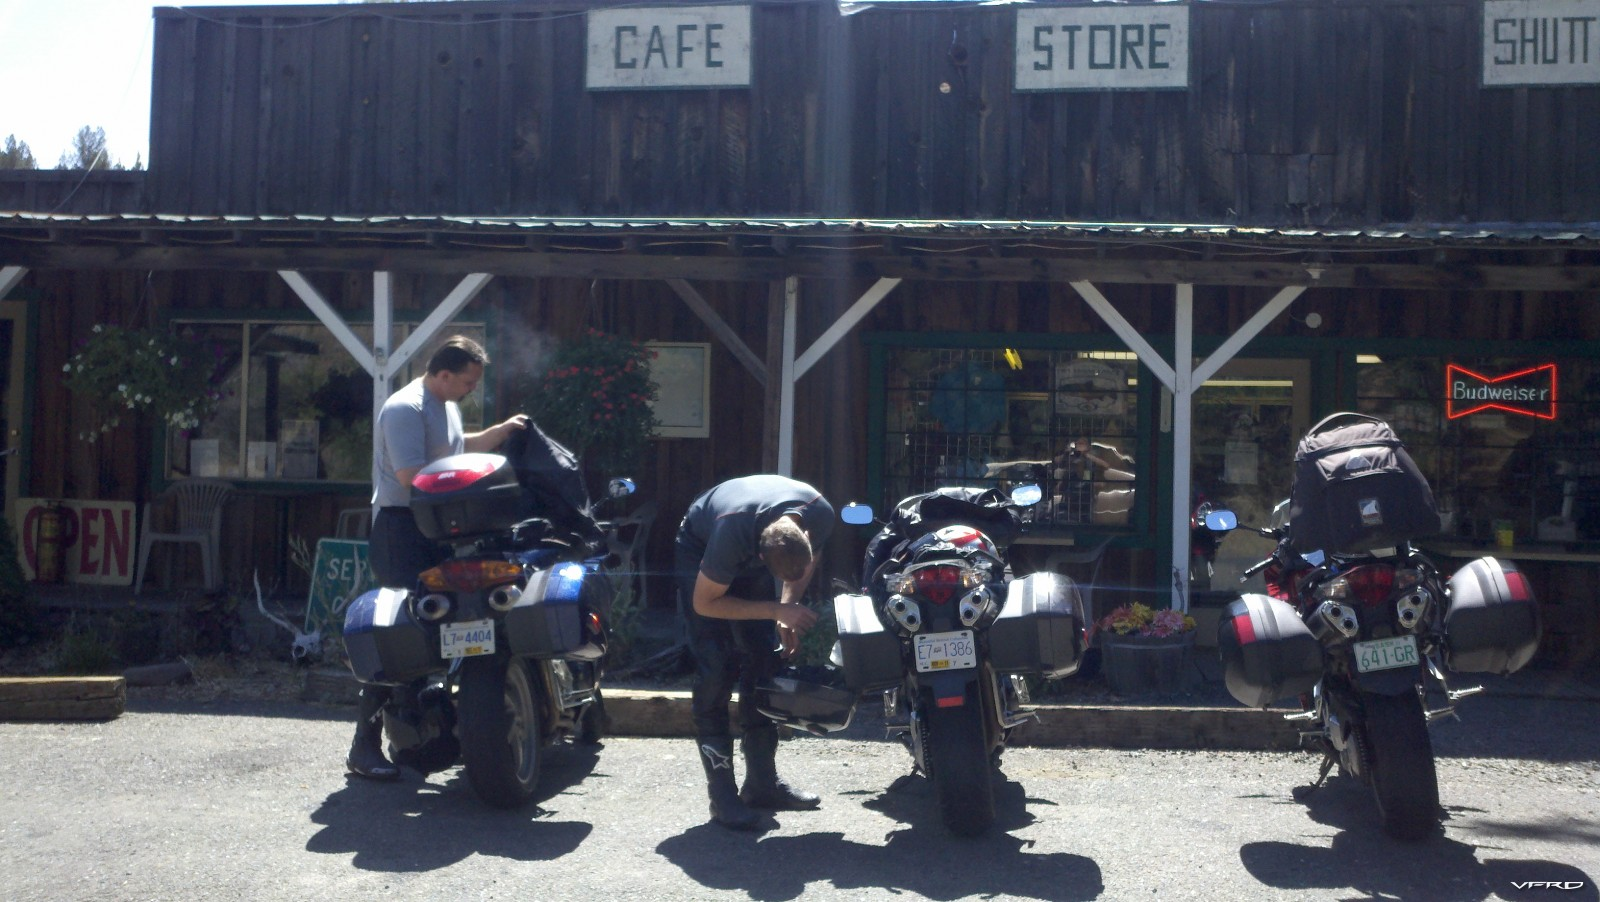 Lunch at Service Creek Oregon